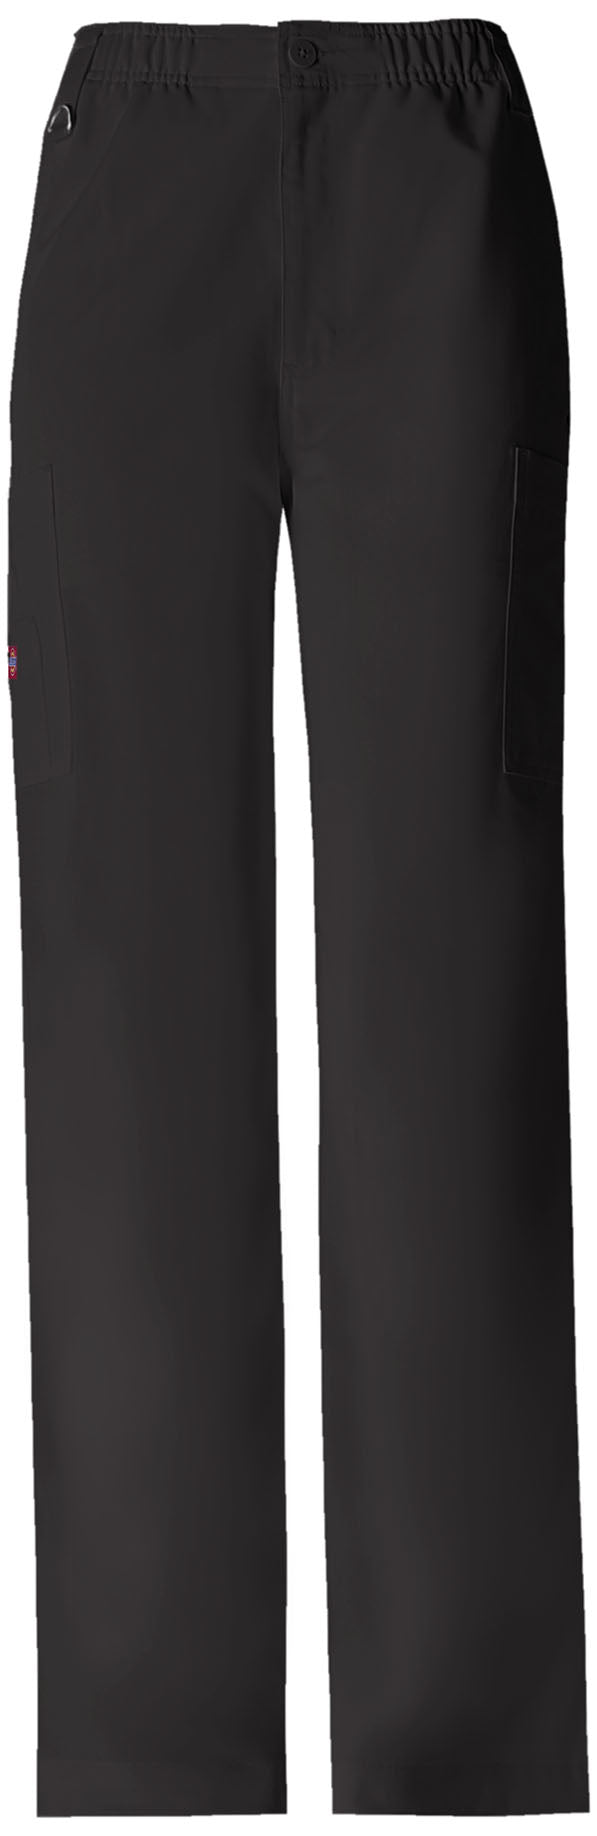 81210 Dickies Xtreme Stretch Mens Scrub Pants - Infectious Clothing Company